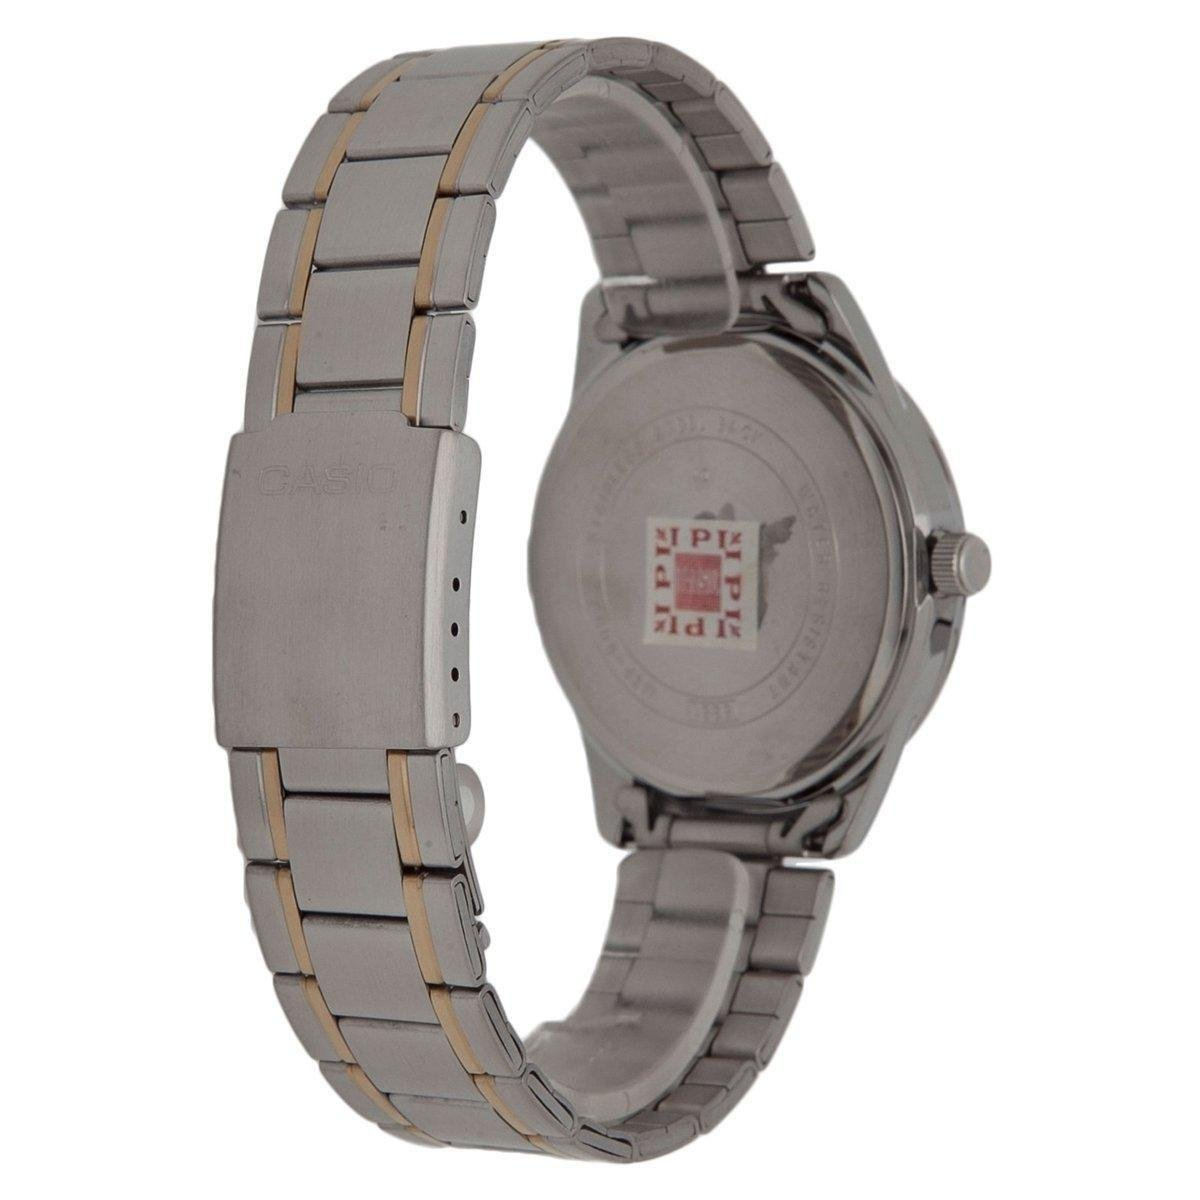 c9328998cf2 Relógio Masculino Casio Collection  Relógio Masculino Casio Collection ...